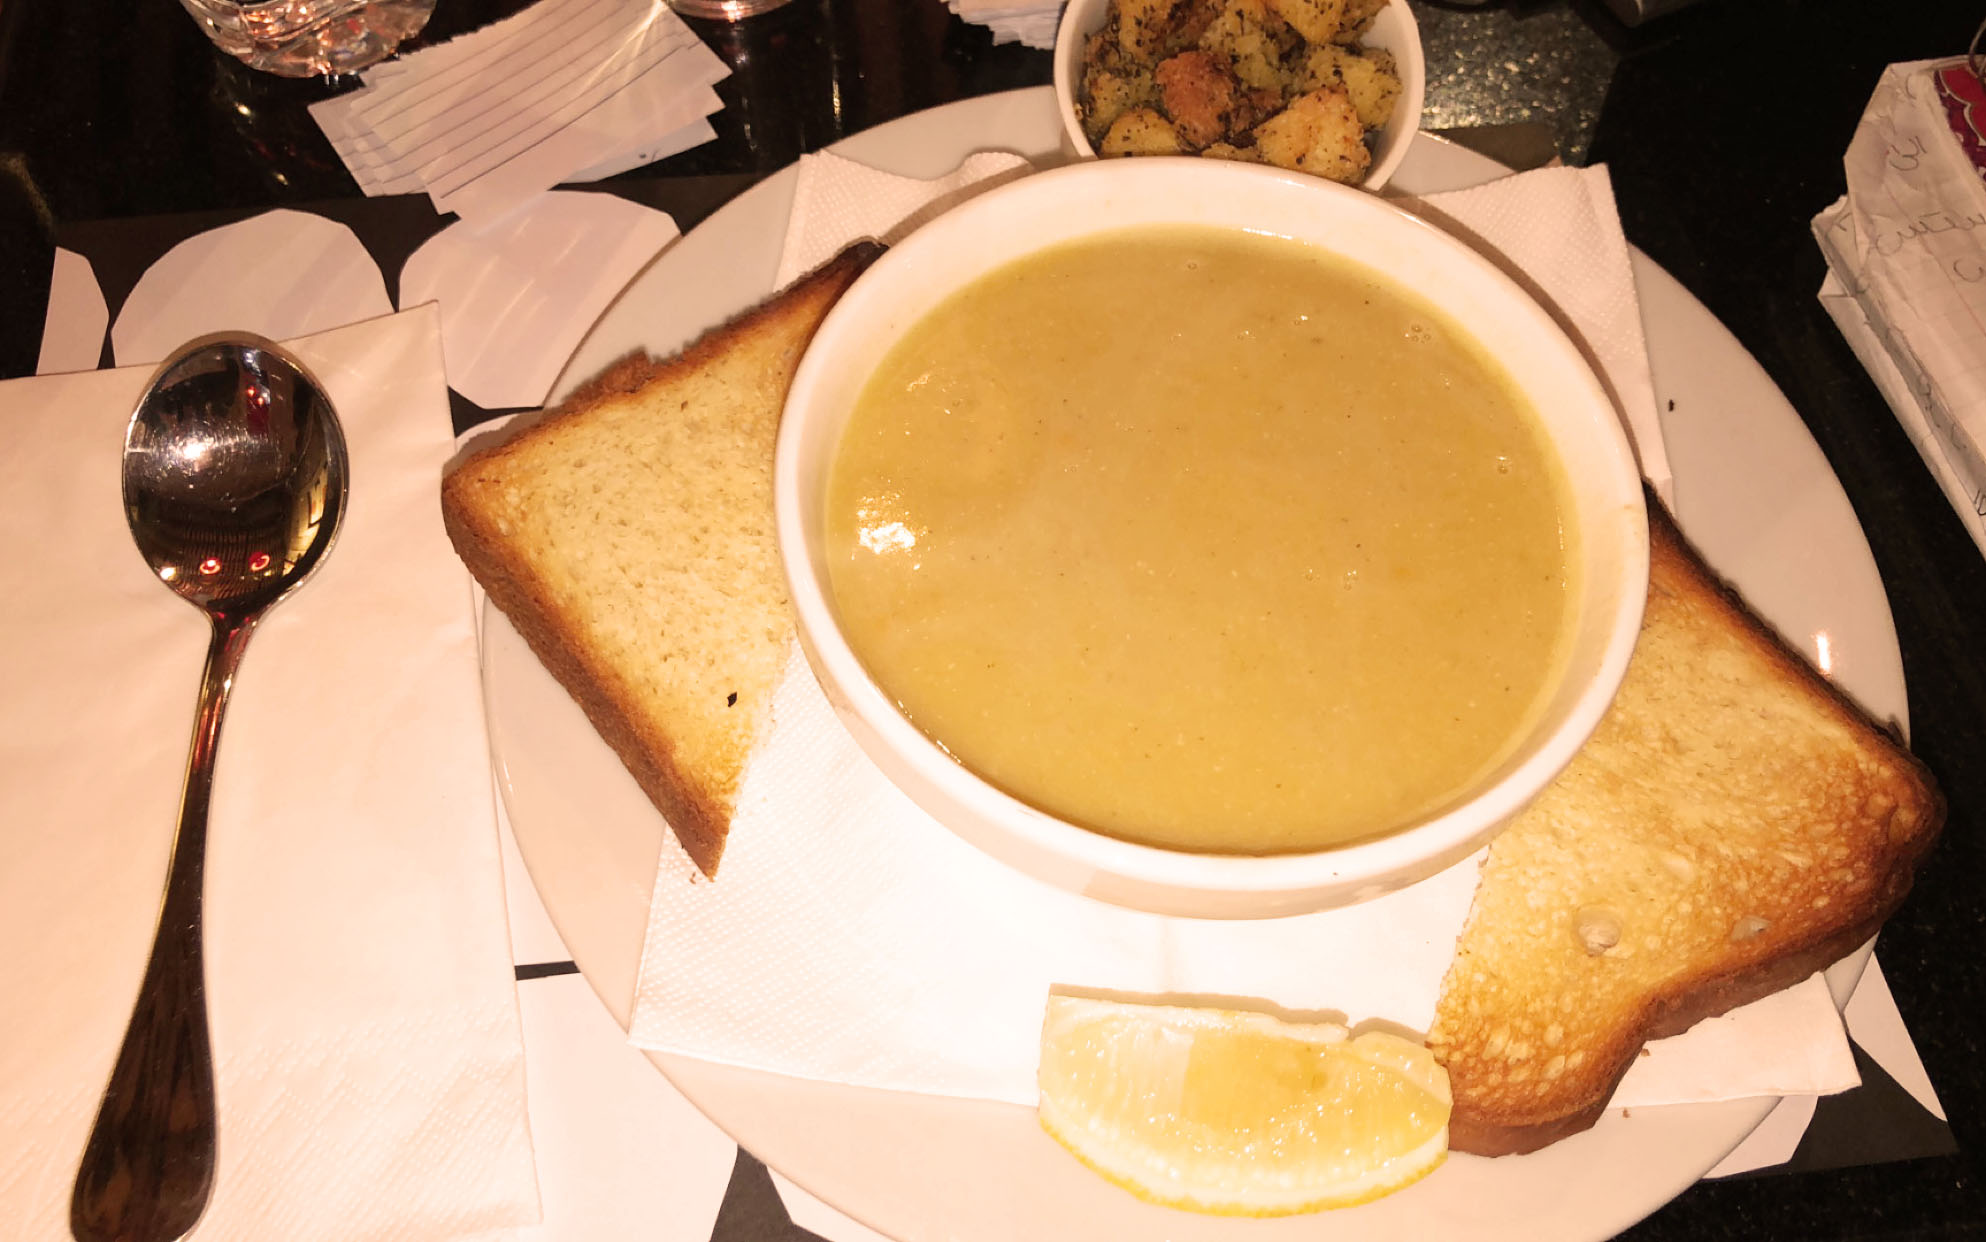 Another staple item we have been having a TON is lentil soup! My friend Elizabeth and I have gotten it at every café so far. It comes with breadcrumbs and it is delicious. My host mom also makes amazing lentil soup from scratch. The one pictured here is from Books@Cafe on Rainbow Street. This is another food I would normally never try in America! Photo credit: Arguin, 2019